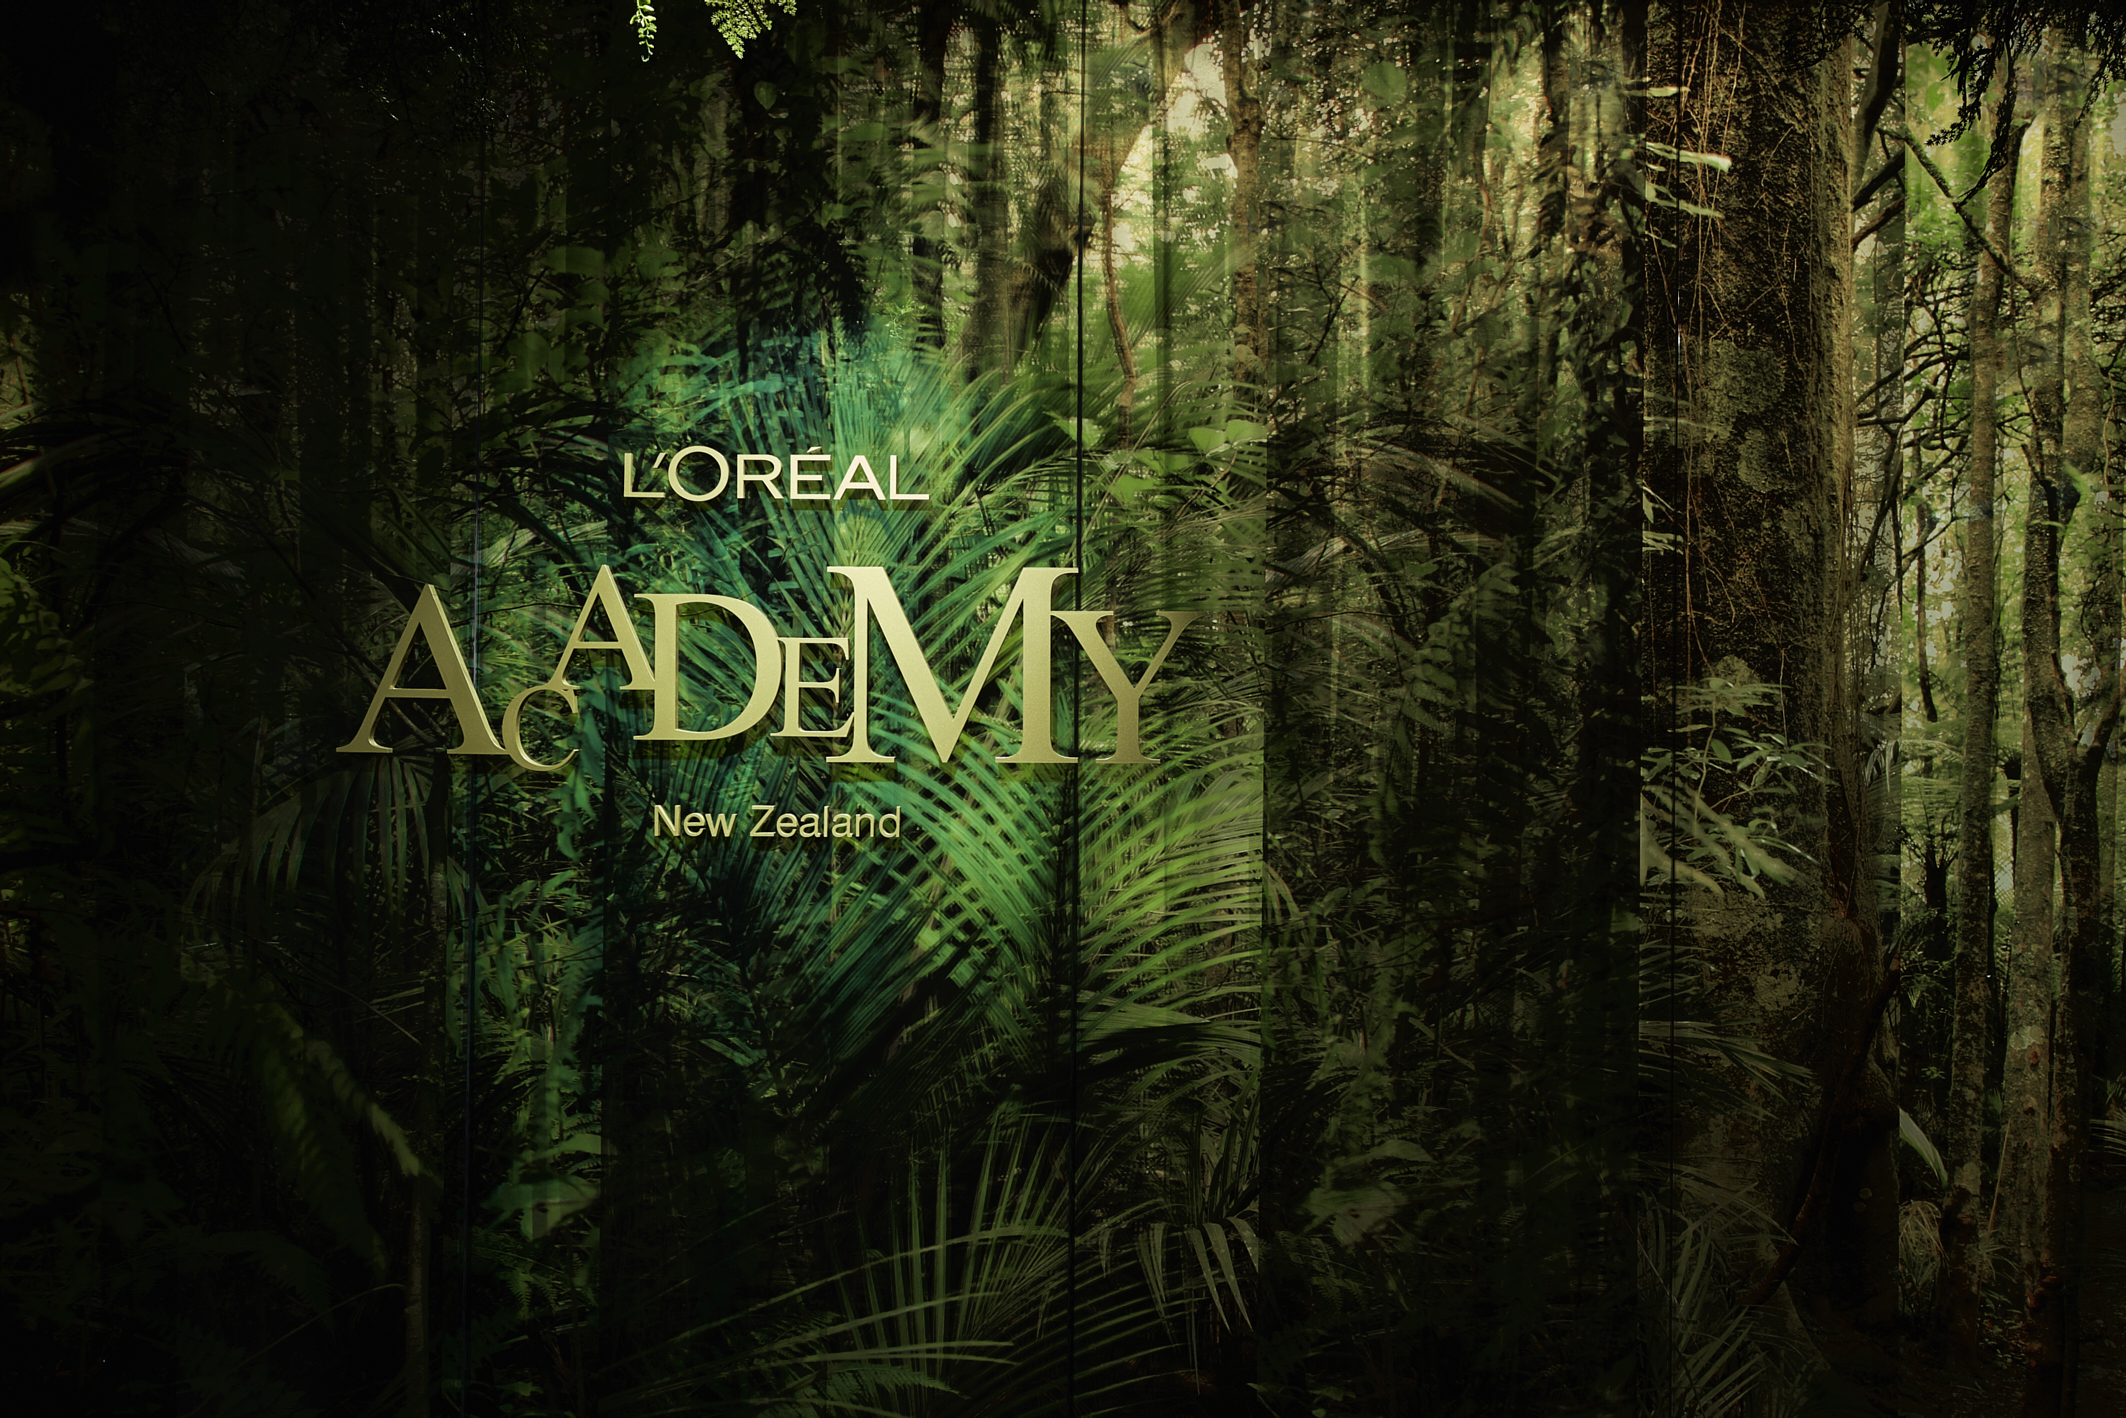 LOREAL ACADEMY - 60 FEDERAL ST